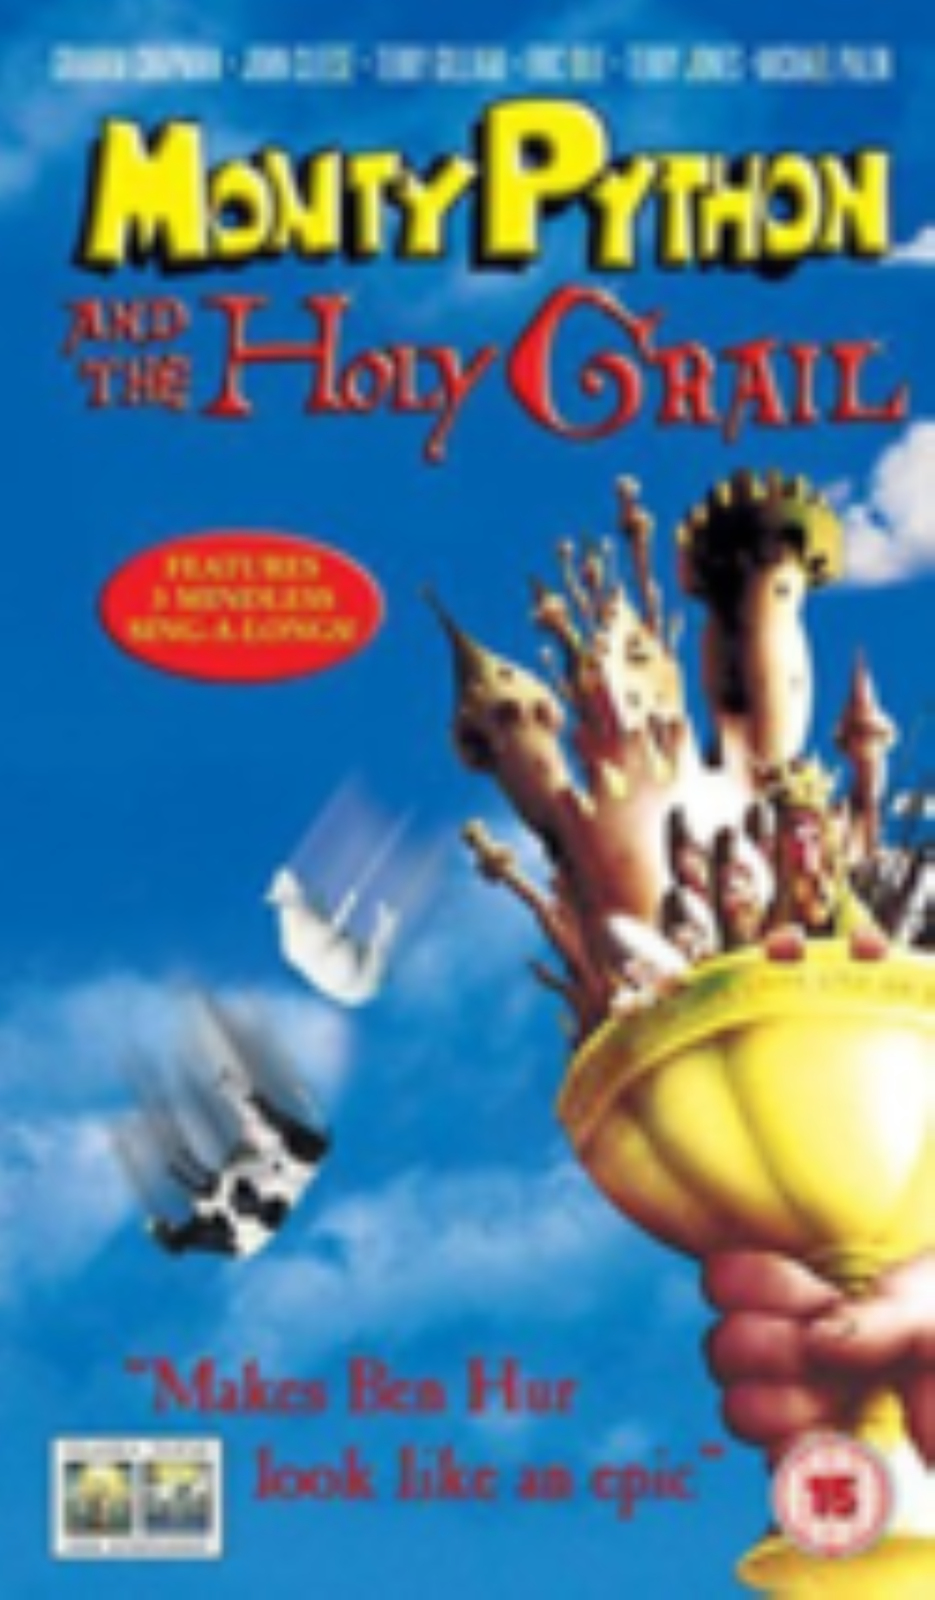 Monty Python and the Holy Grail Vhs